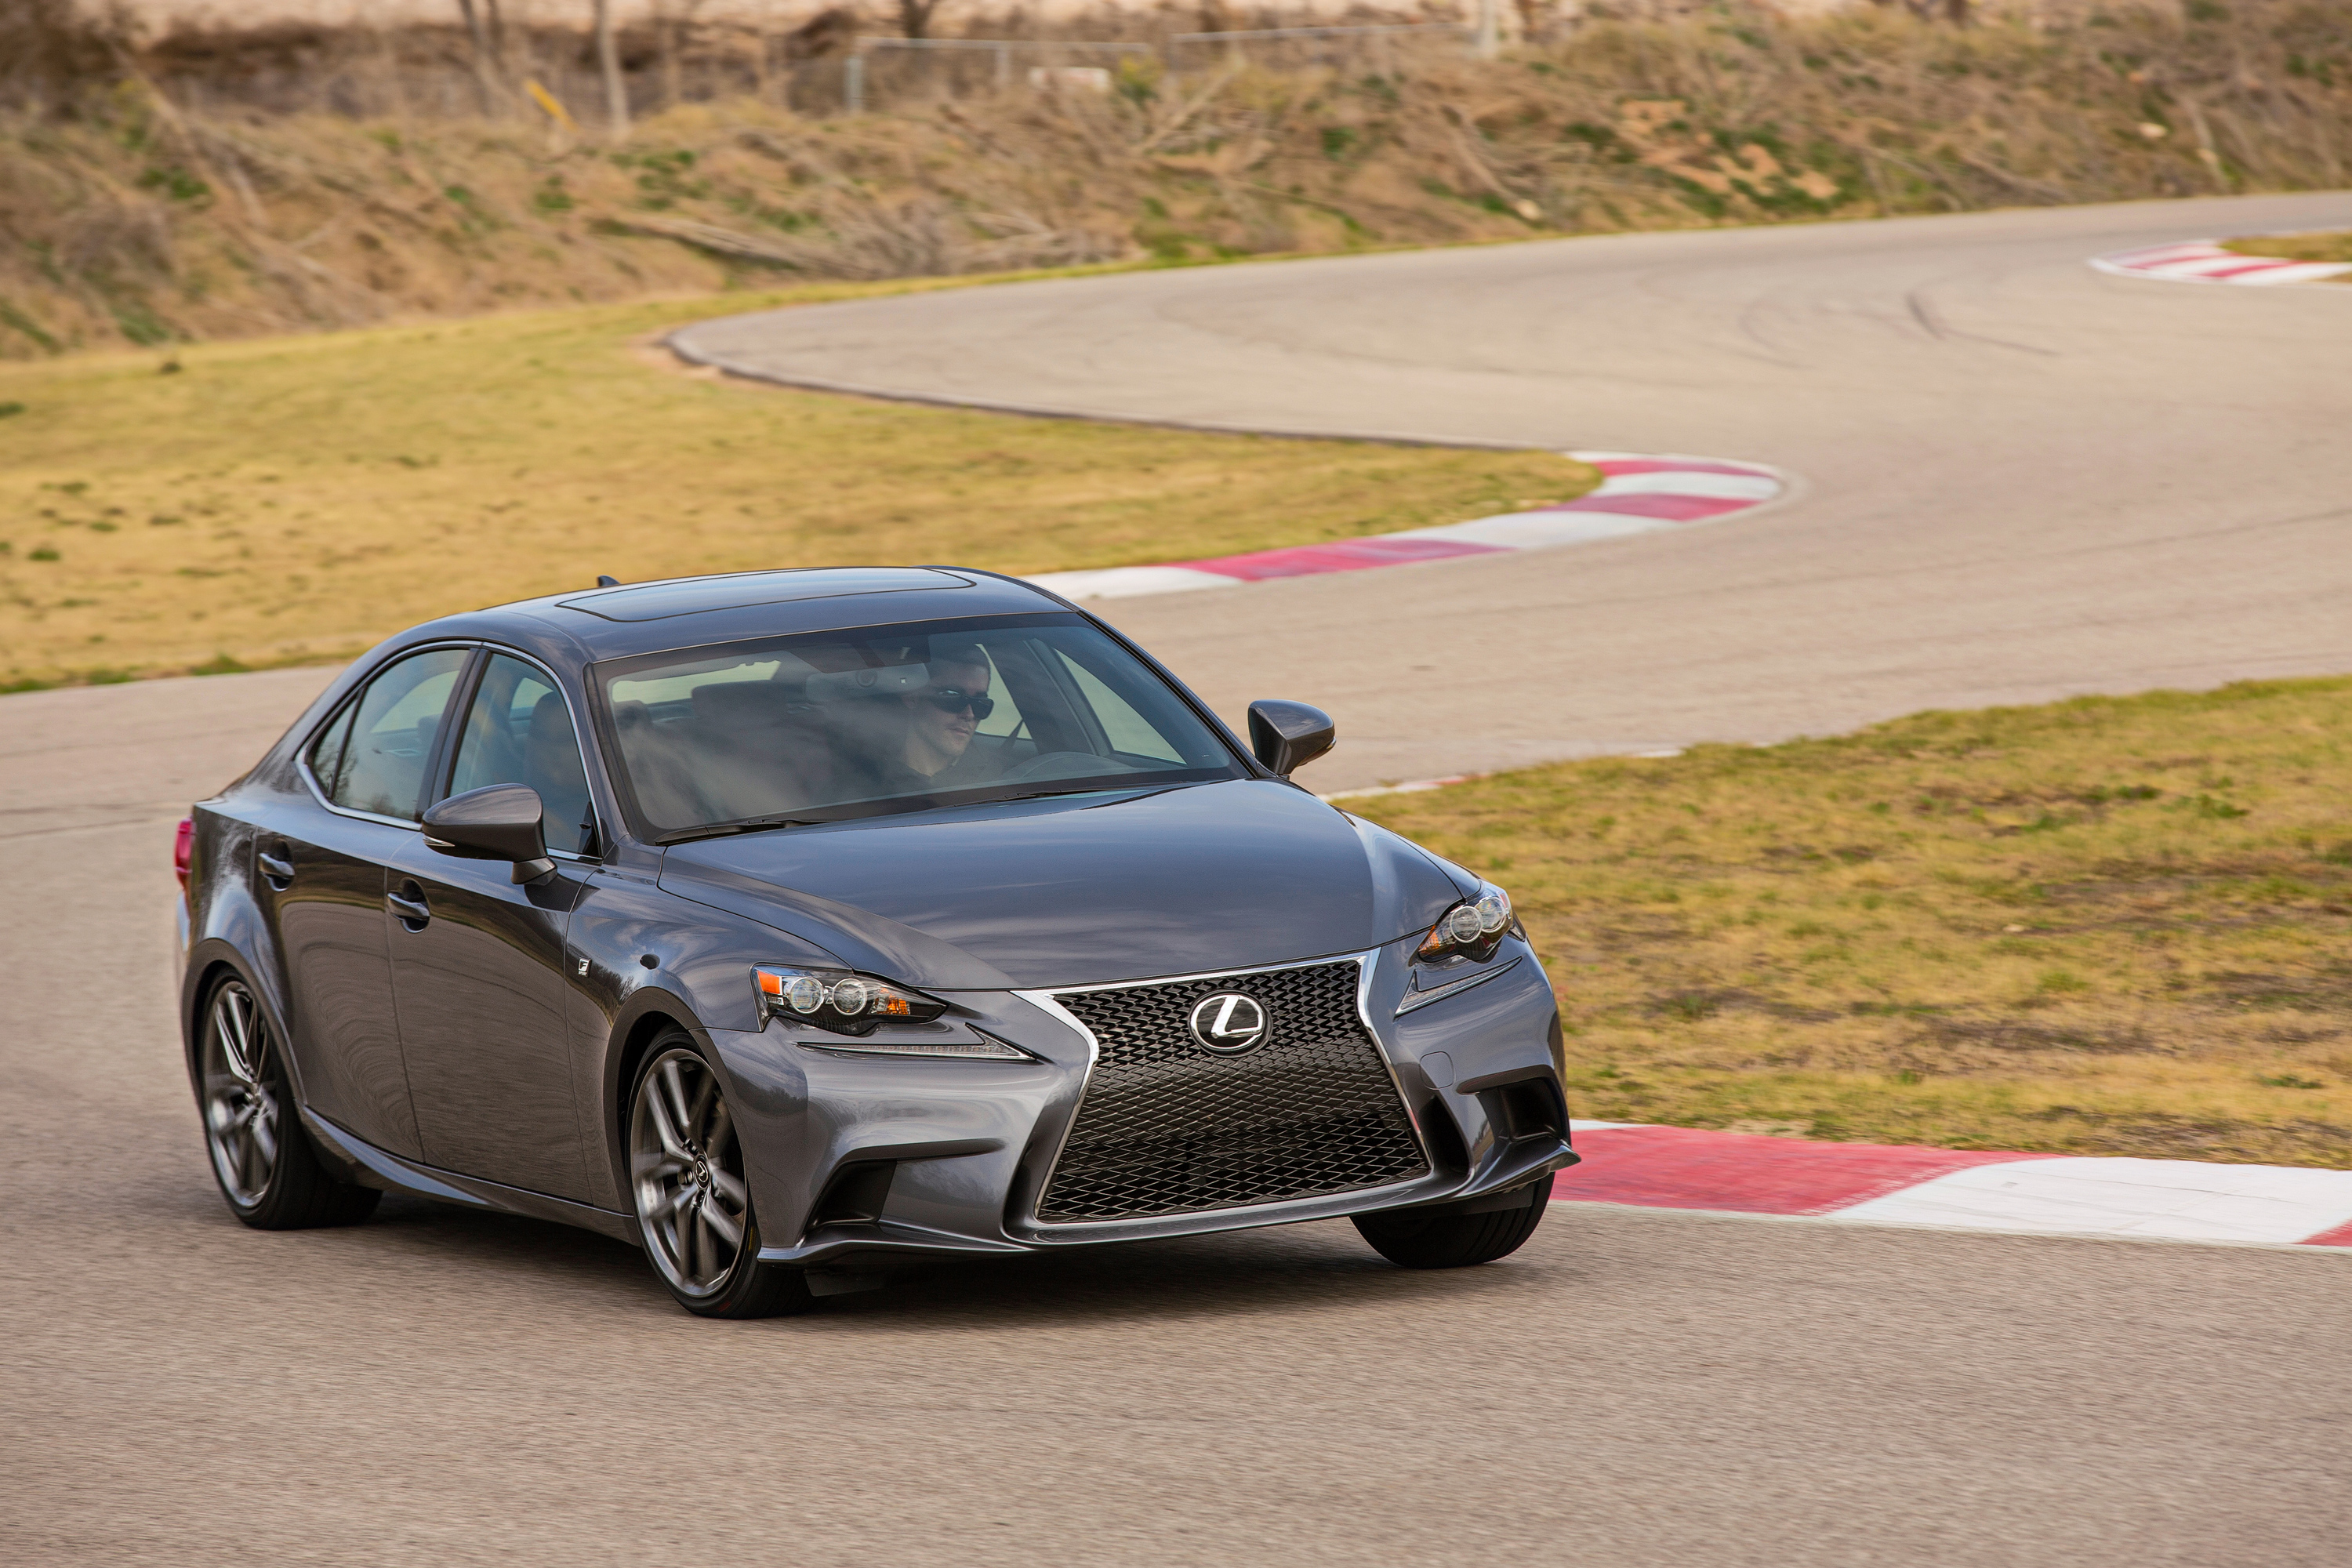 2014 lexus is 250 f sport carfanatics blog. Black Bedroom Furniture Sets. Home Design Ideas